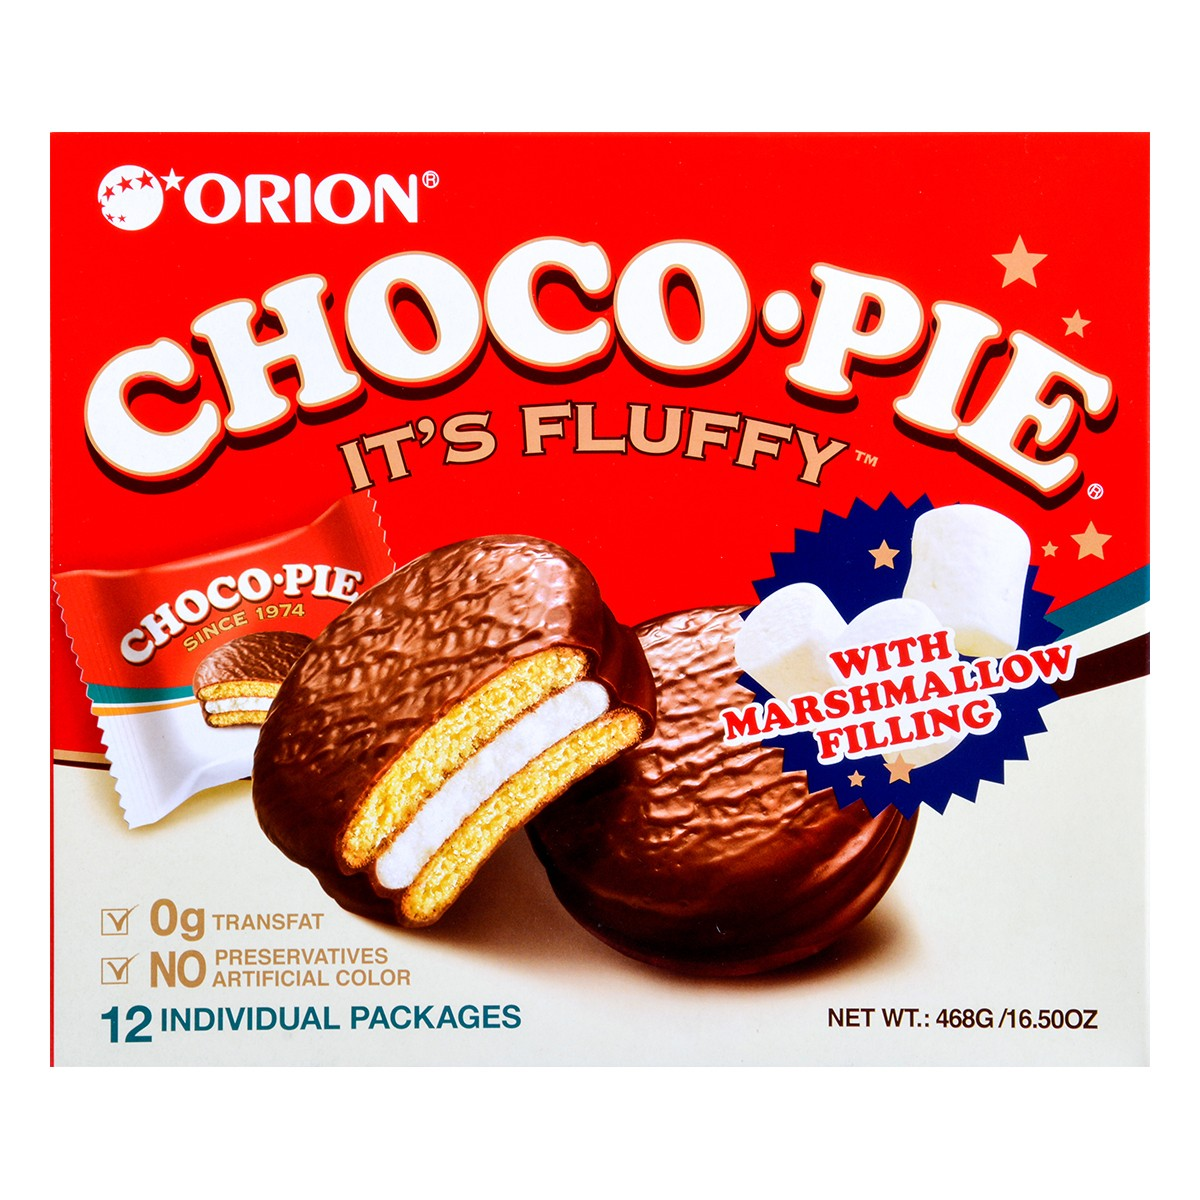 ORION Choco Pie with Marshmallow Filling 12Packs